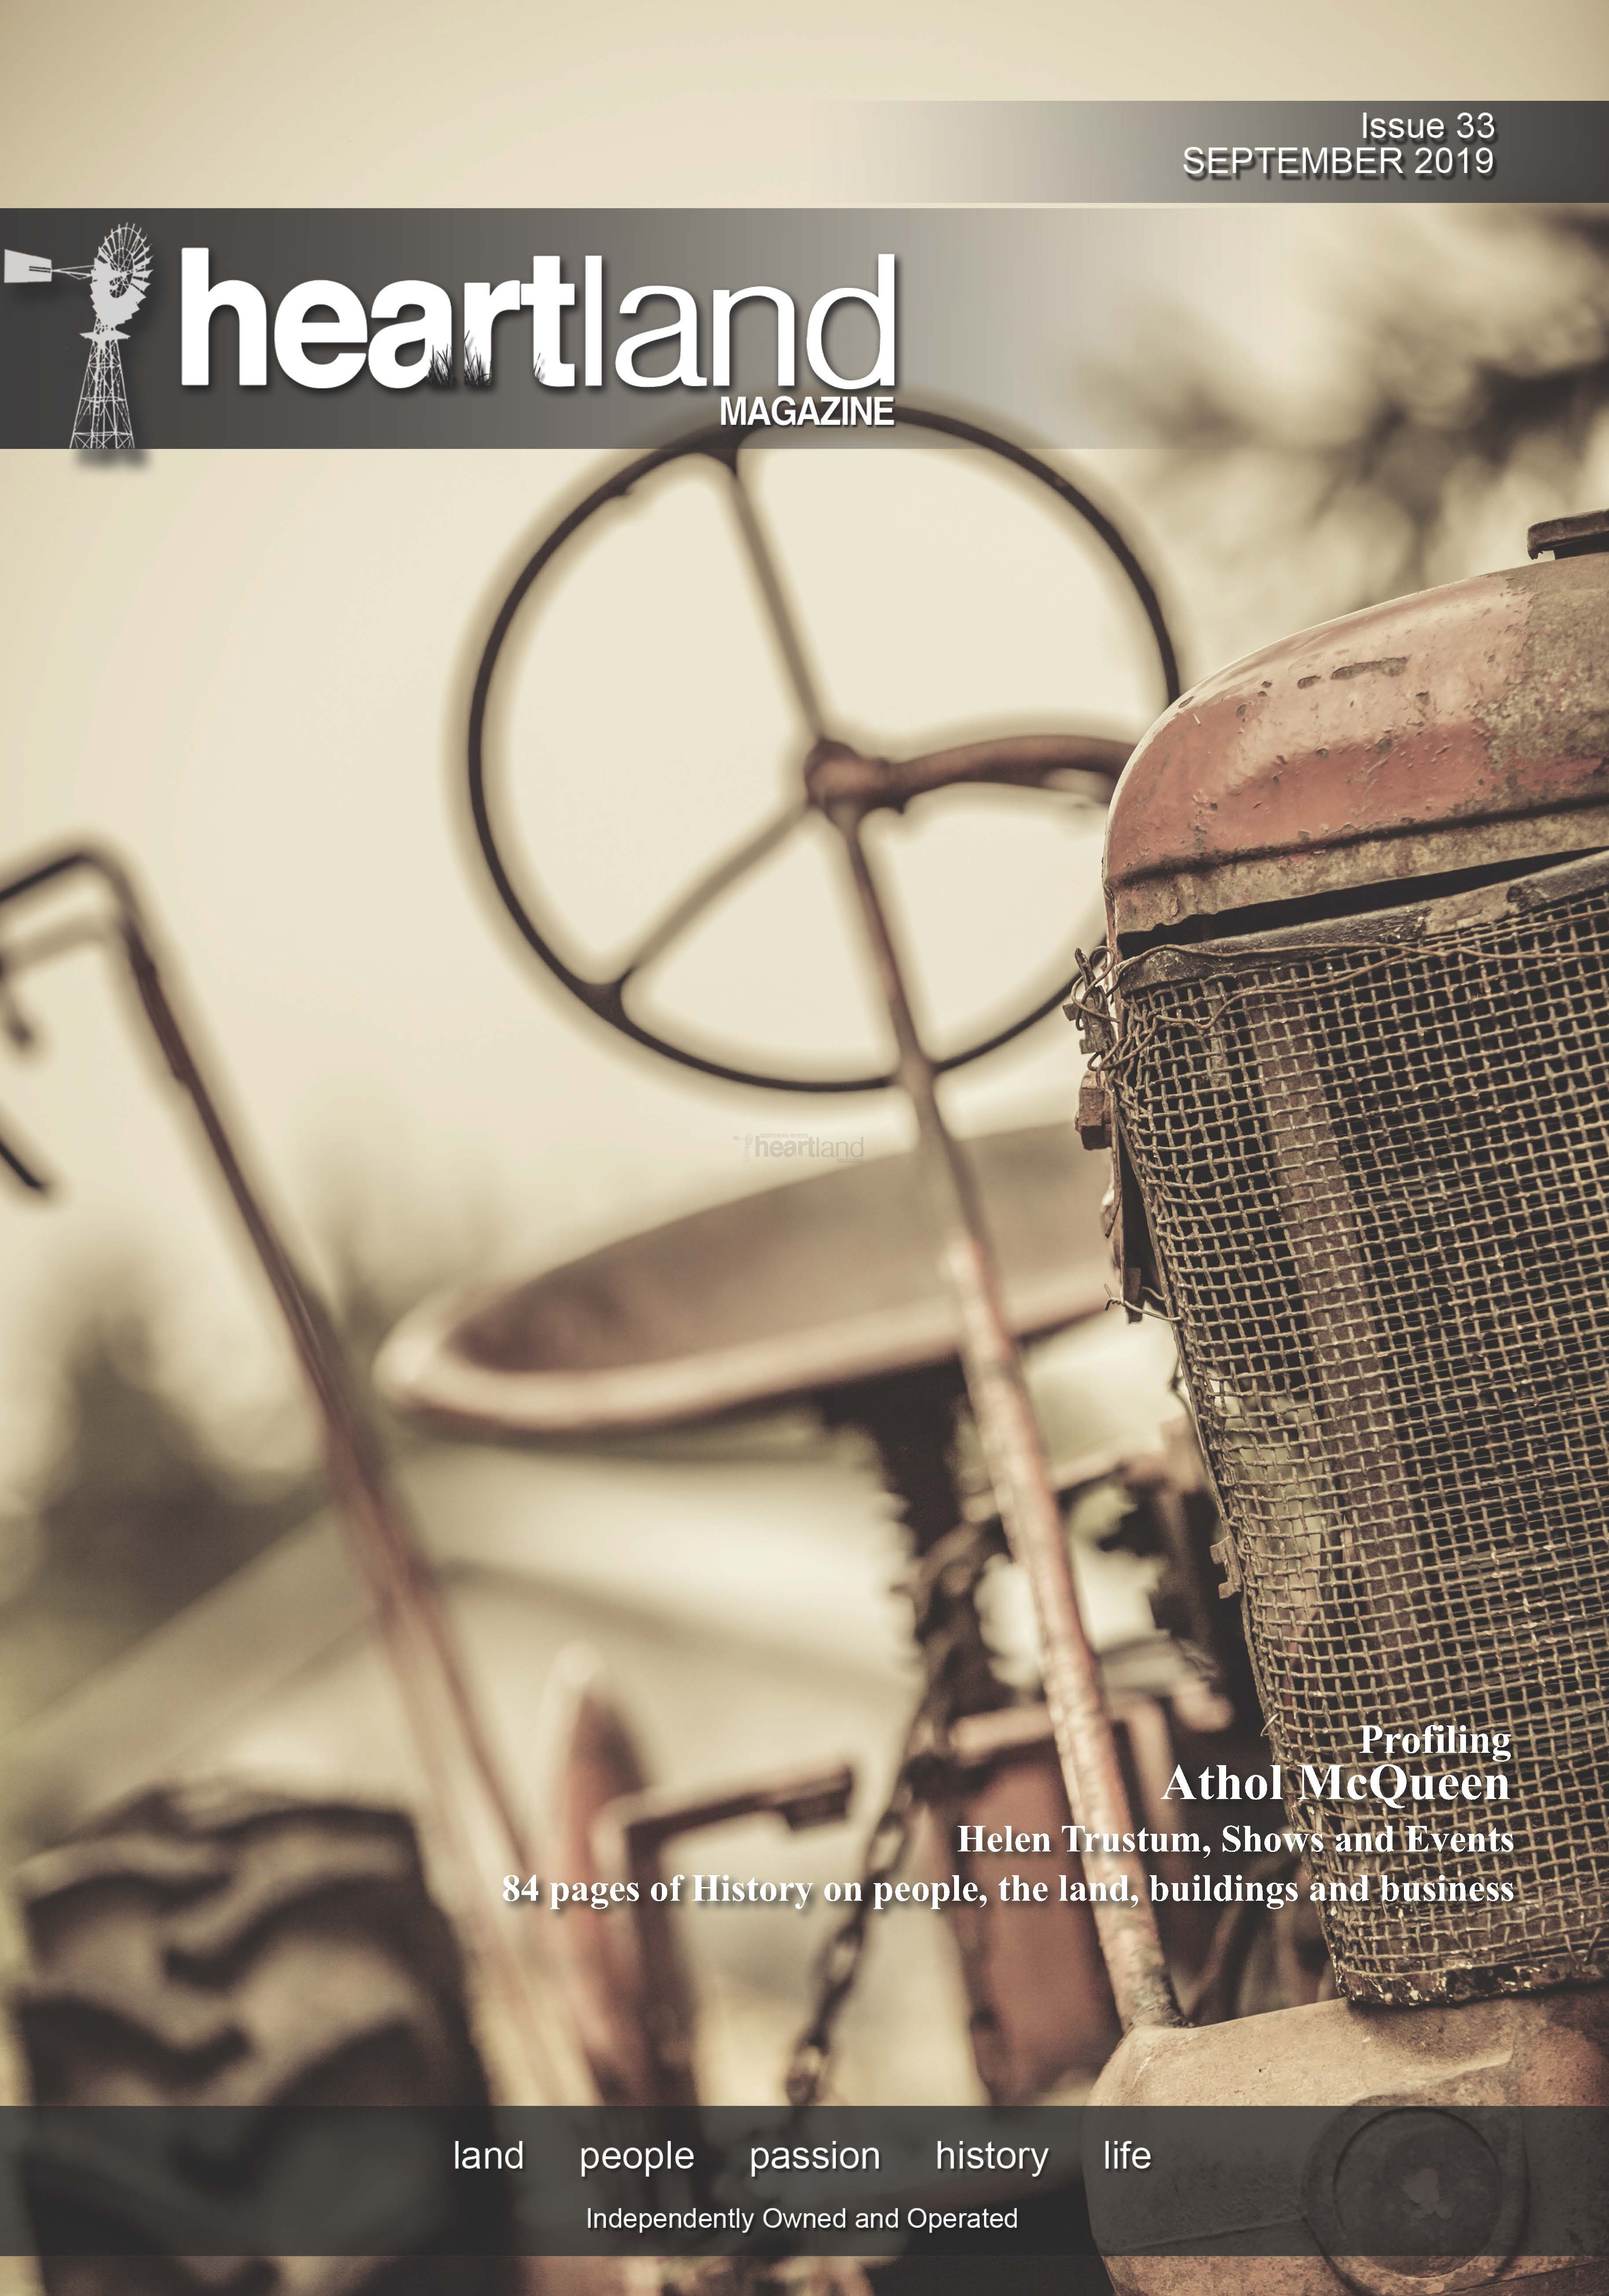 Heartland eMagazine Issue 33, News, Events & Advertising NSW Northern Rivers, Advertising Lismore, Advertising Byron Bay Lismore Advertising, Ballina Advertising, Chesterfield Australia, Richmond Valley Council